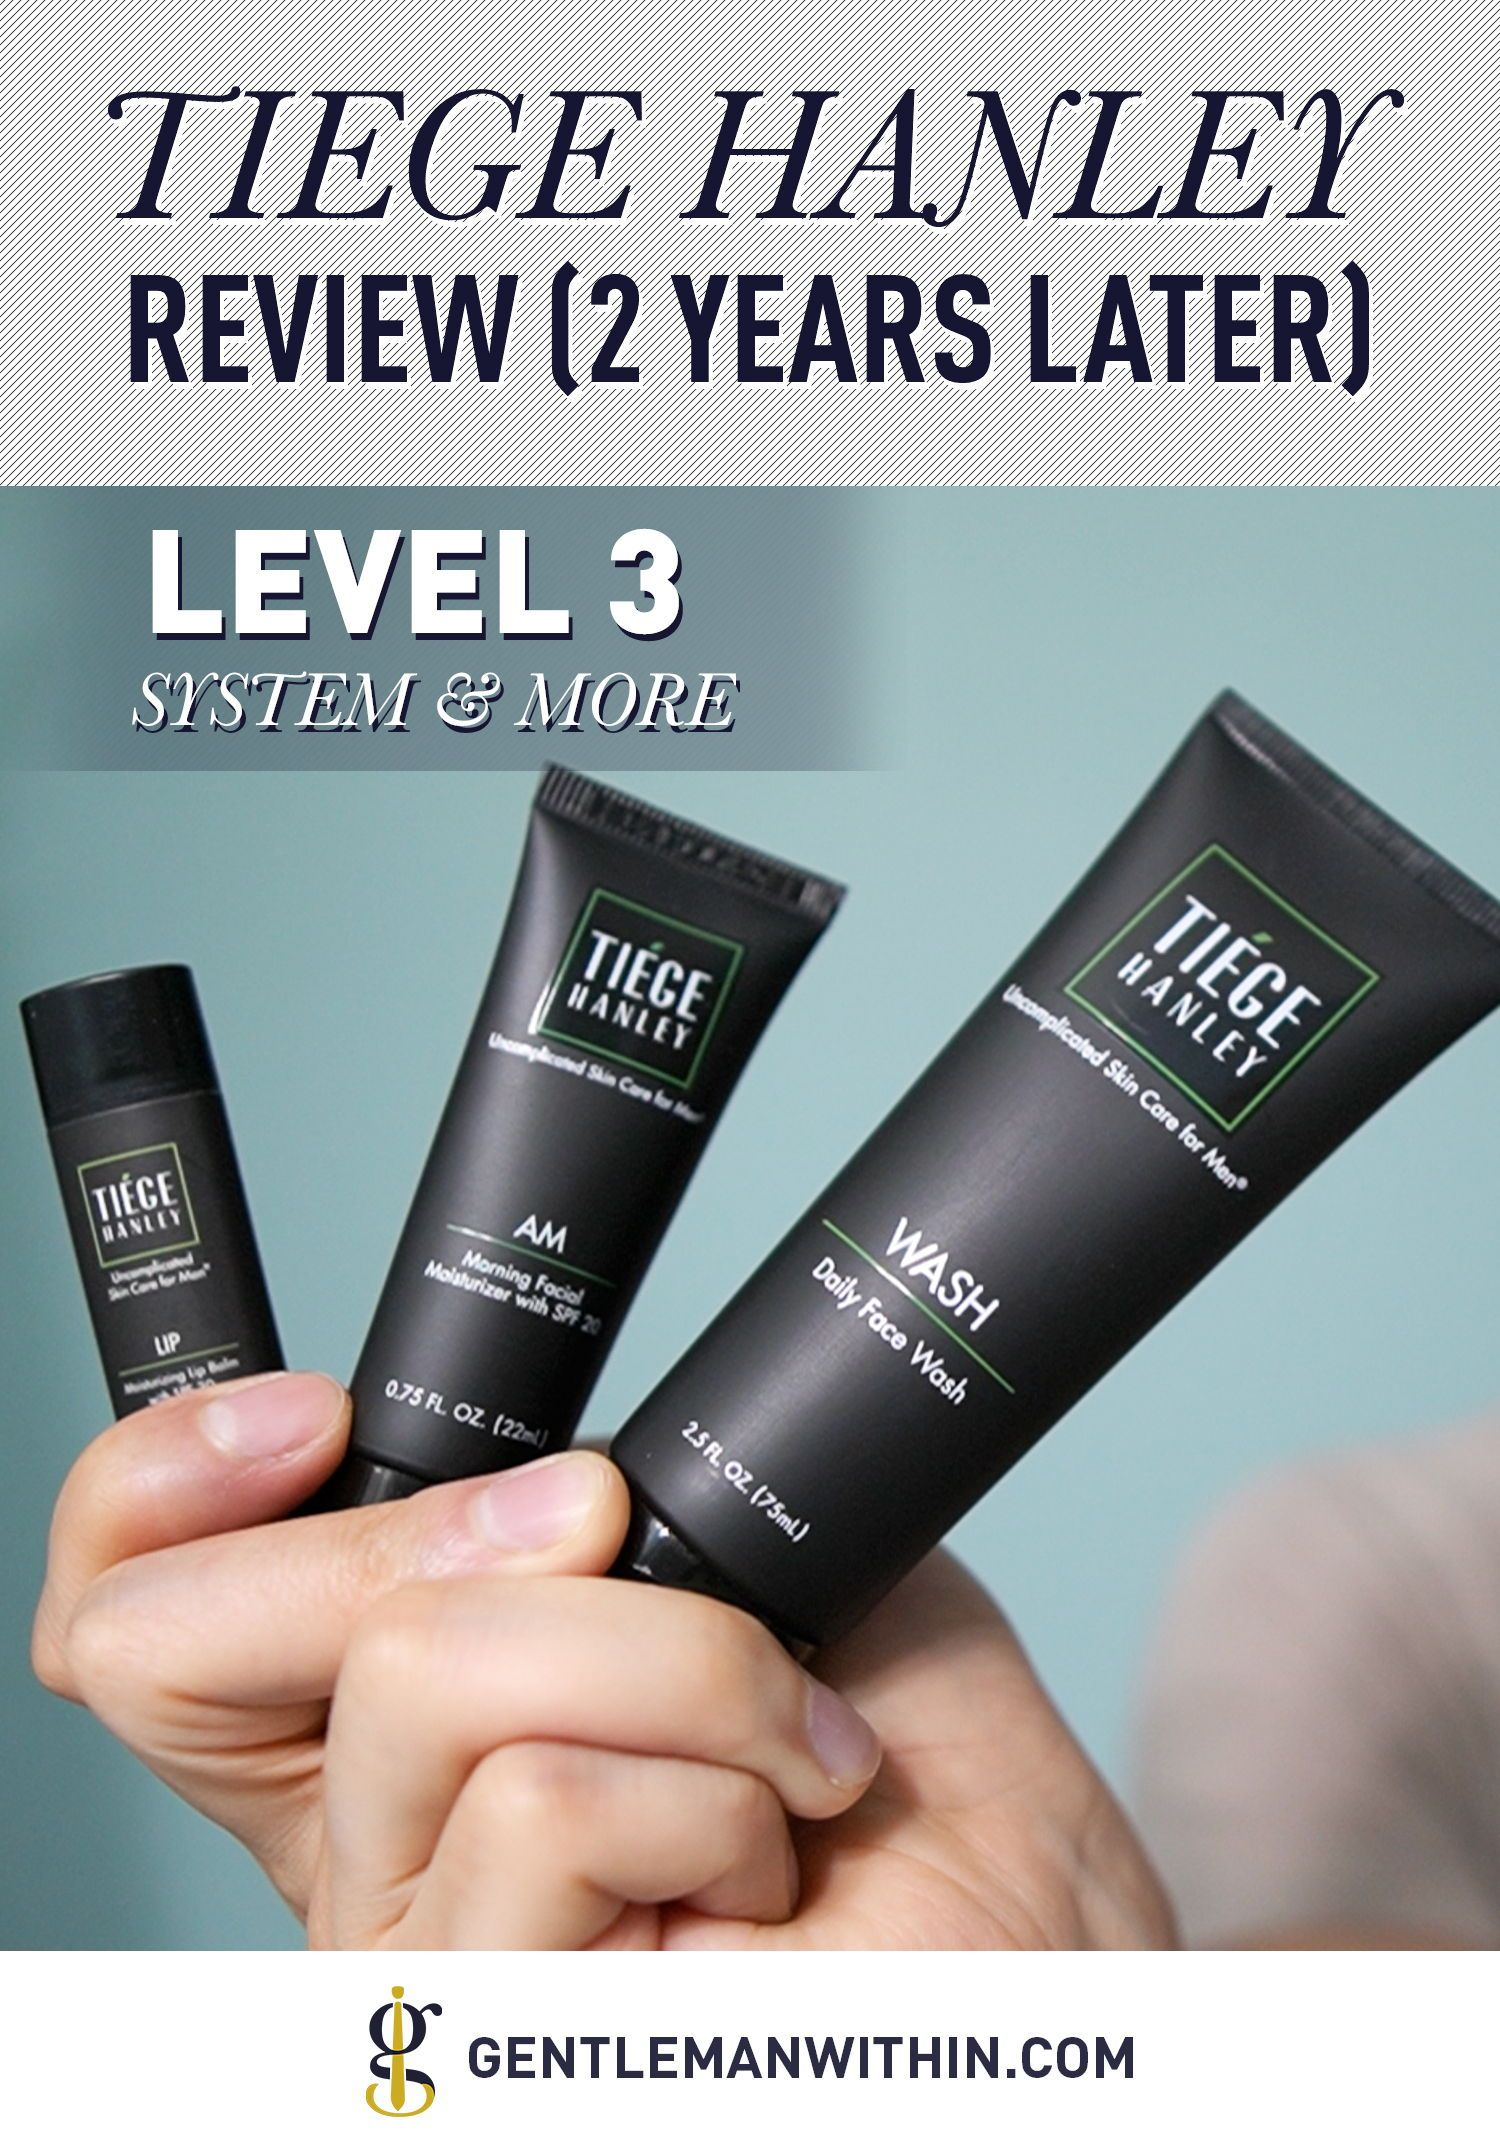 Tiege Hanley Review 2 Years Later Is It Worth It Level 3 System More In 2020 Mens Skin Care Skin Care System Daily Face Wash